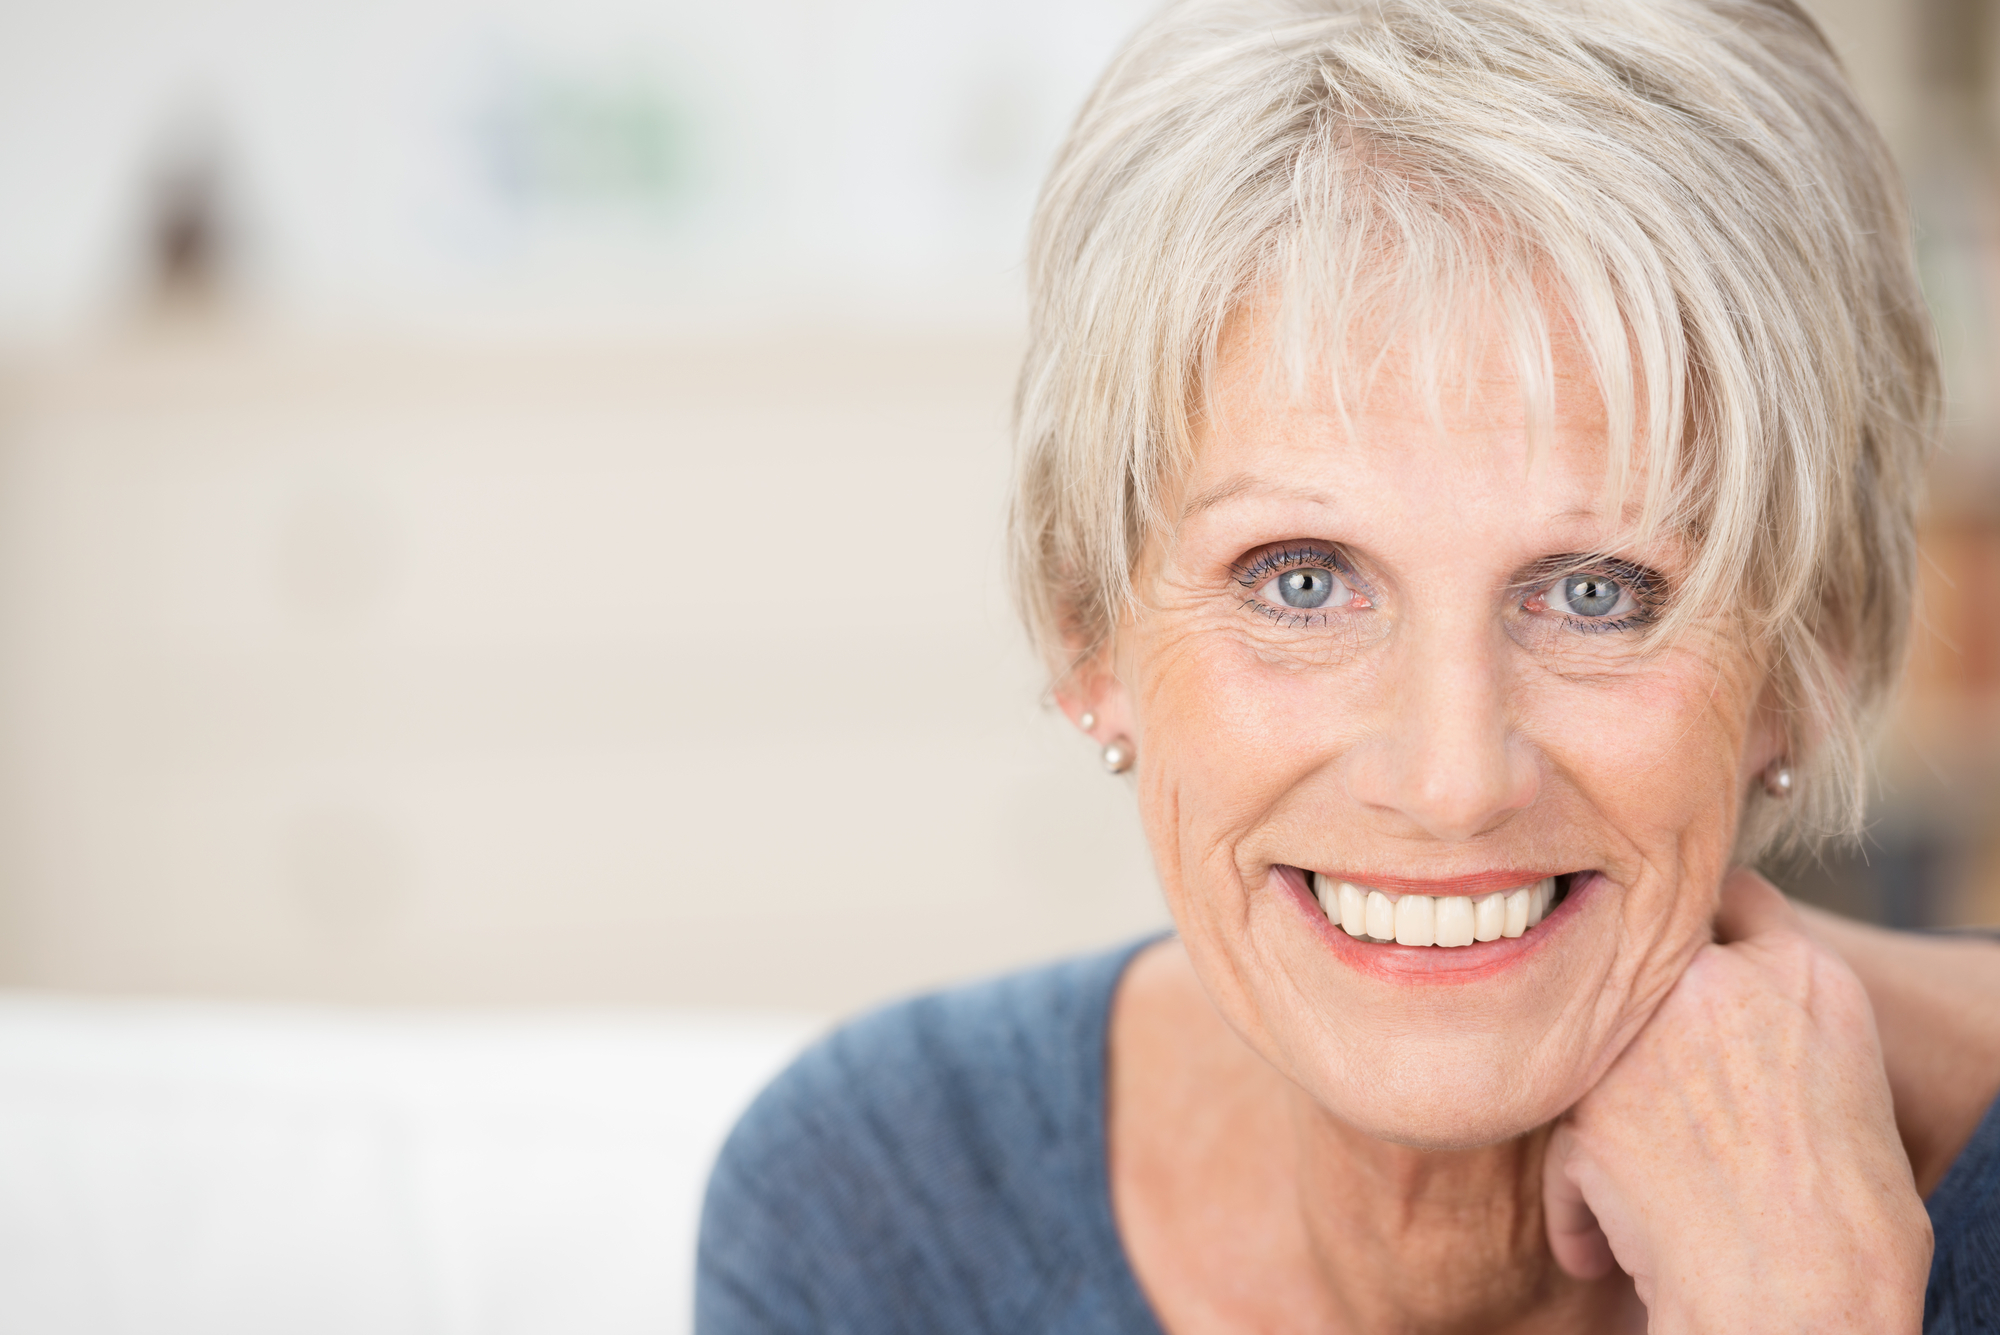 Ceramic Implants in Palm Beach Gardens | Benefits of Ceramic Implants